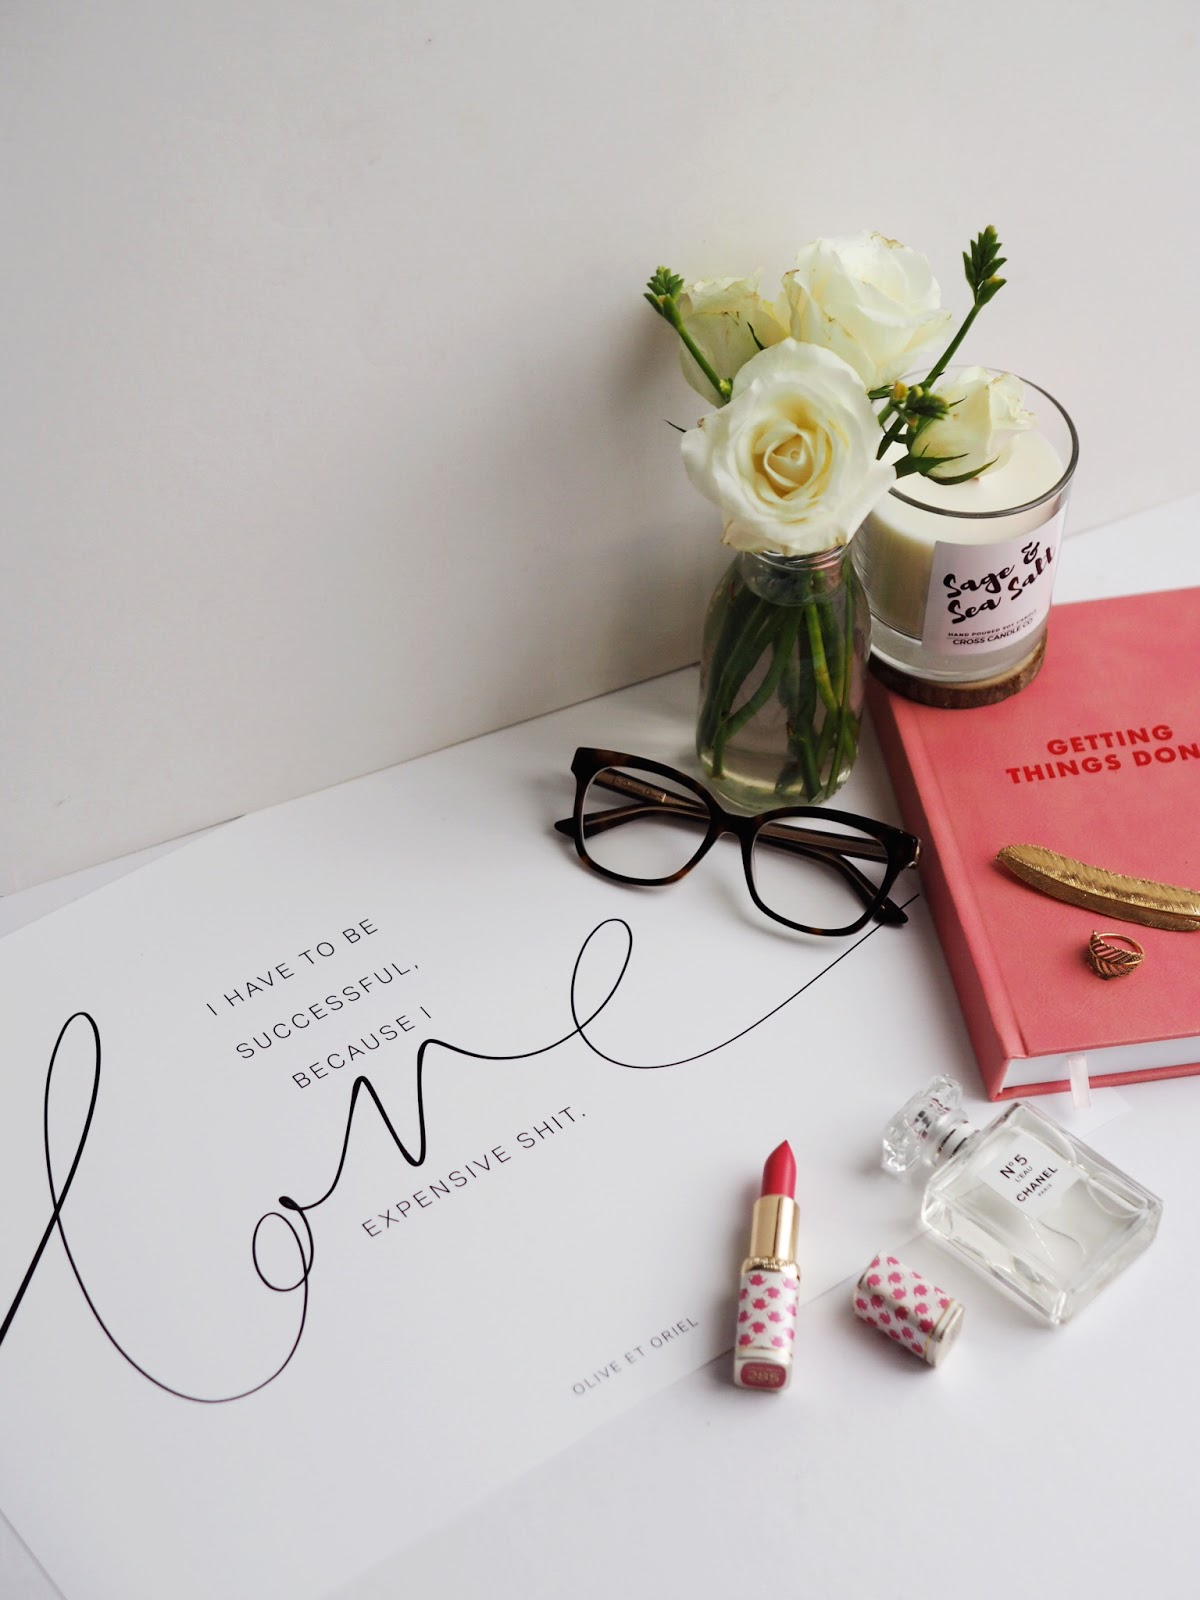 Lifestyle | Defining Success; Olive et Oriel Poster, Lipstick, Pink Planner, Perfume, Flowers, Dior Glasses